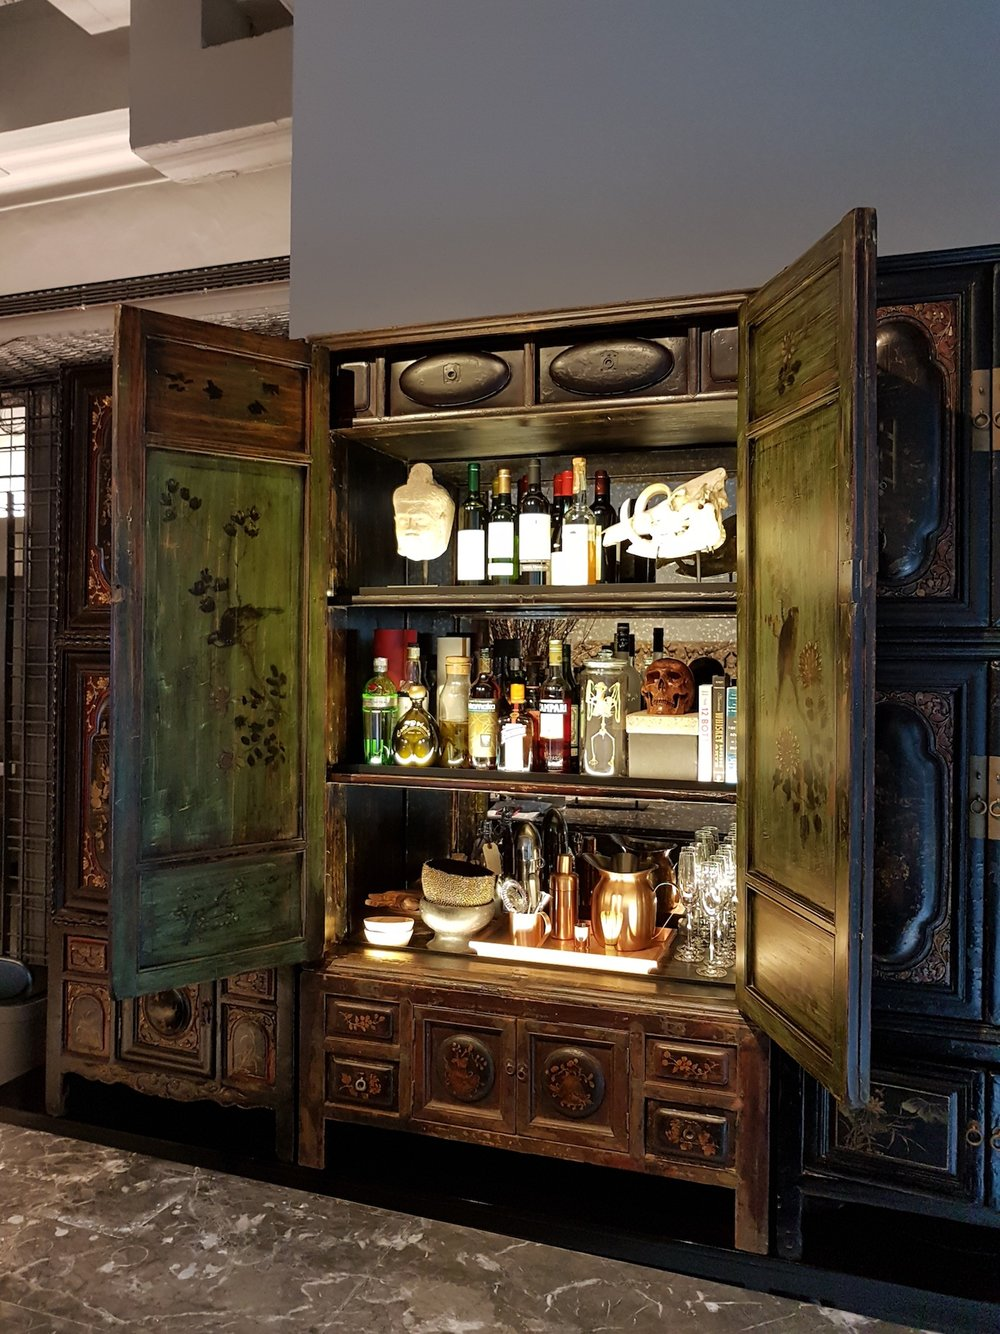 Antique cabinet converted into a bar. Corporate office, styling and photo courtesy of eco-id architects Singapore.